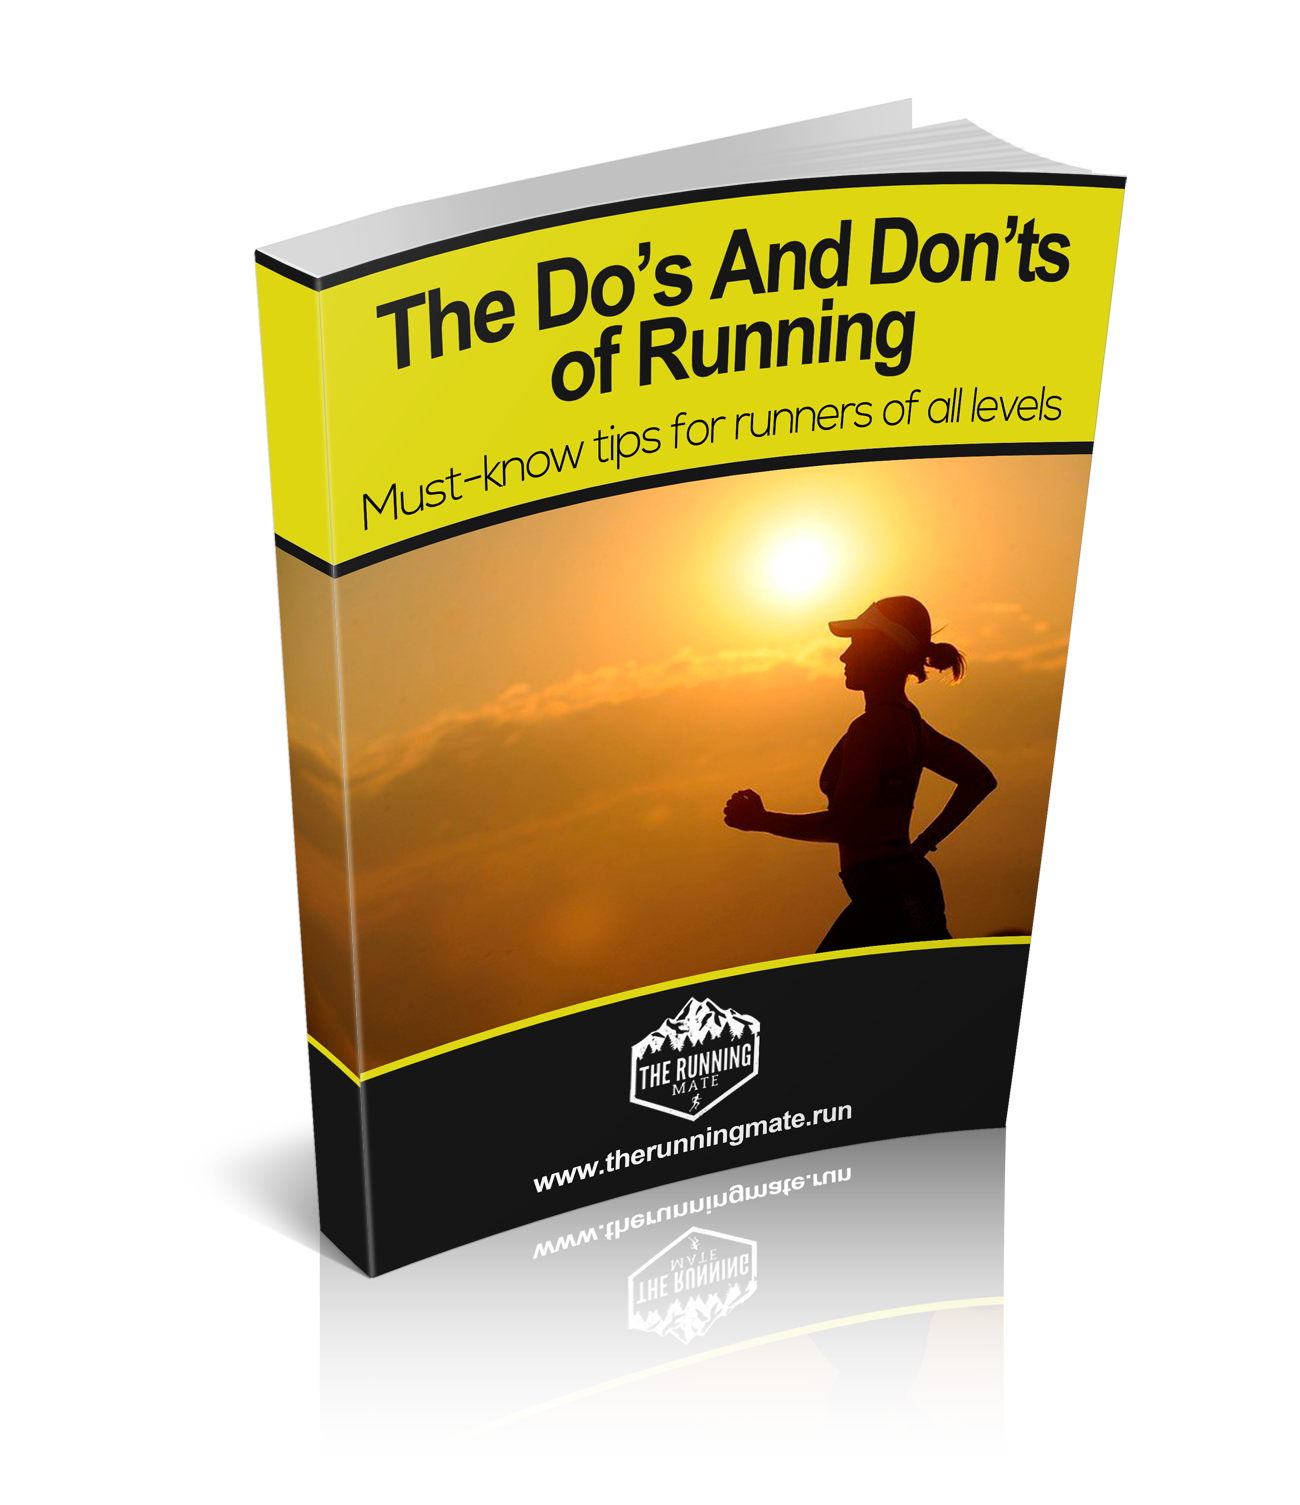 Free eBook: The Do's And Don'ts of Running